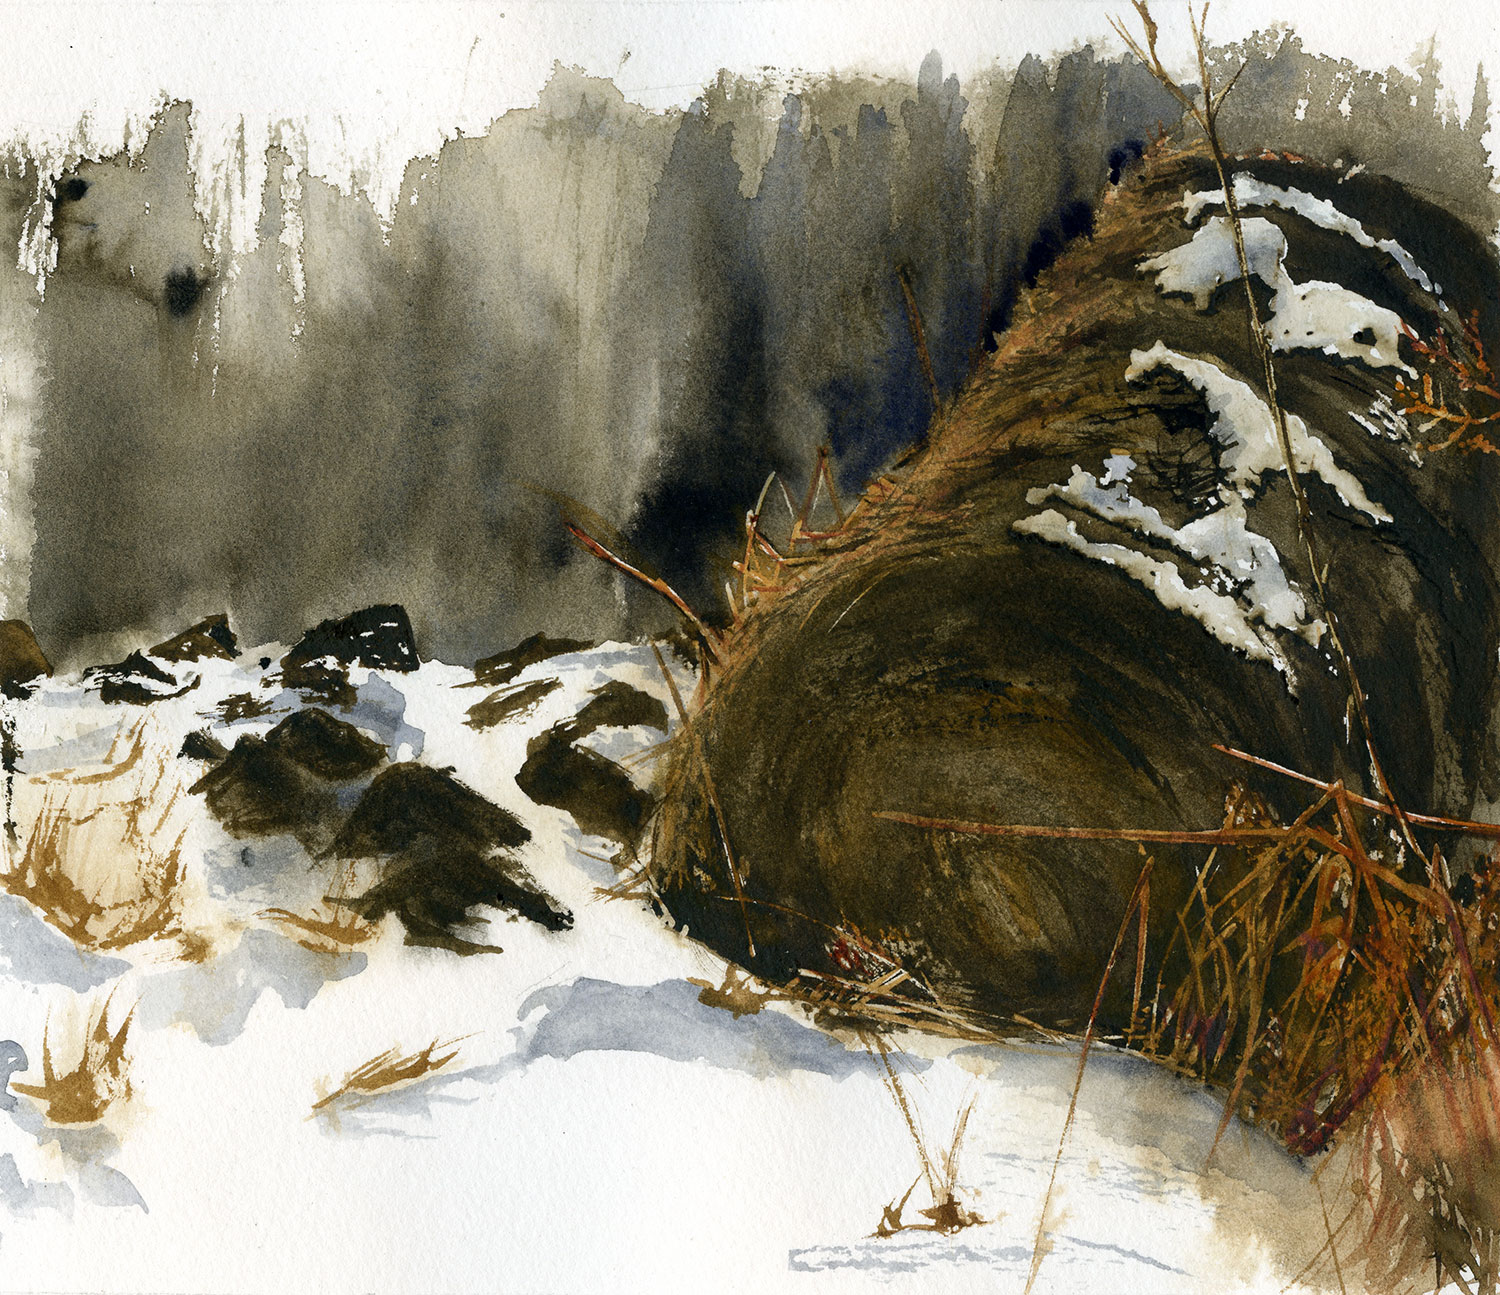 Watercolor painting of a haybale in the snow.